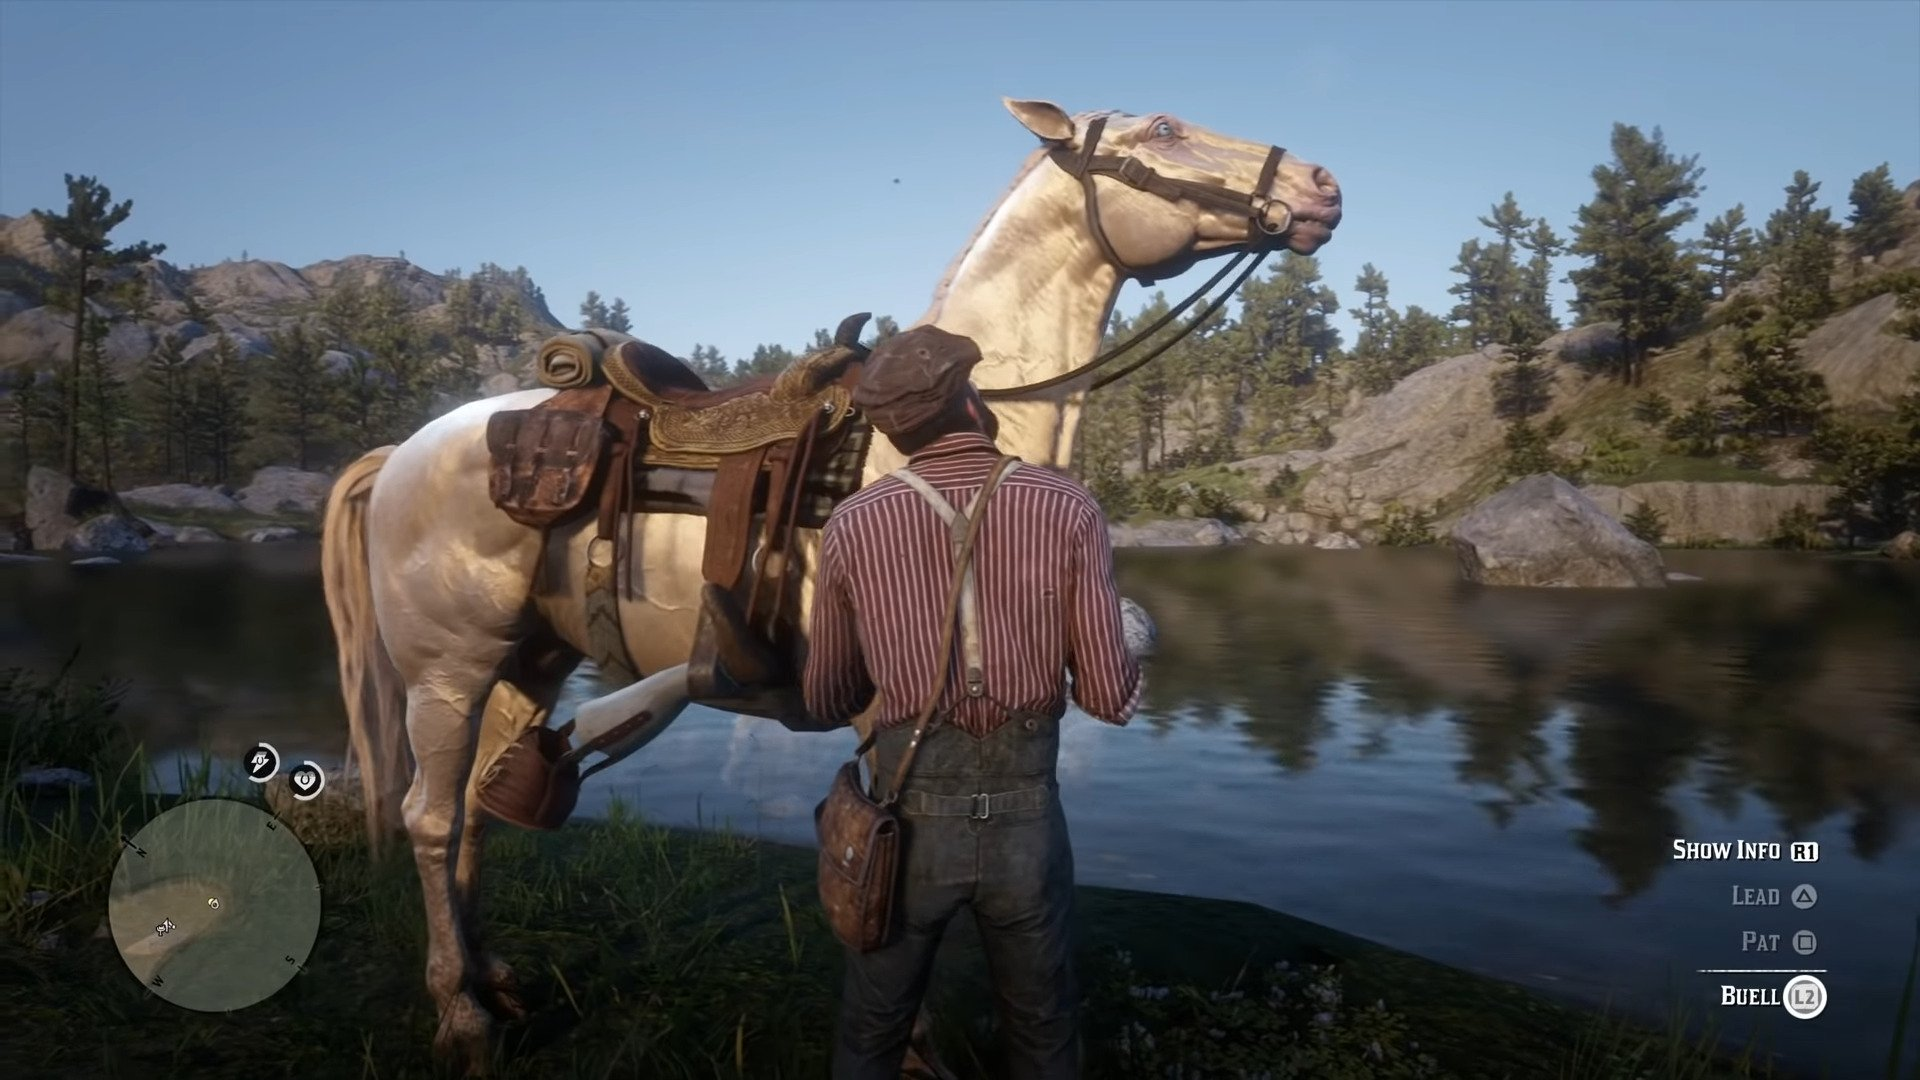 Red Dead Redemption 2: All Horse Breeds And Available Coats, As Well As How To Find Them